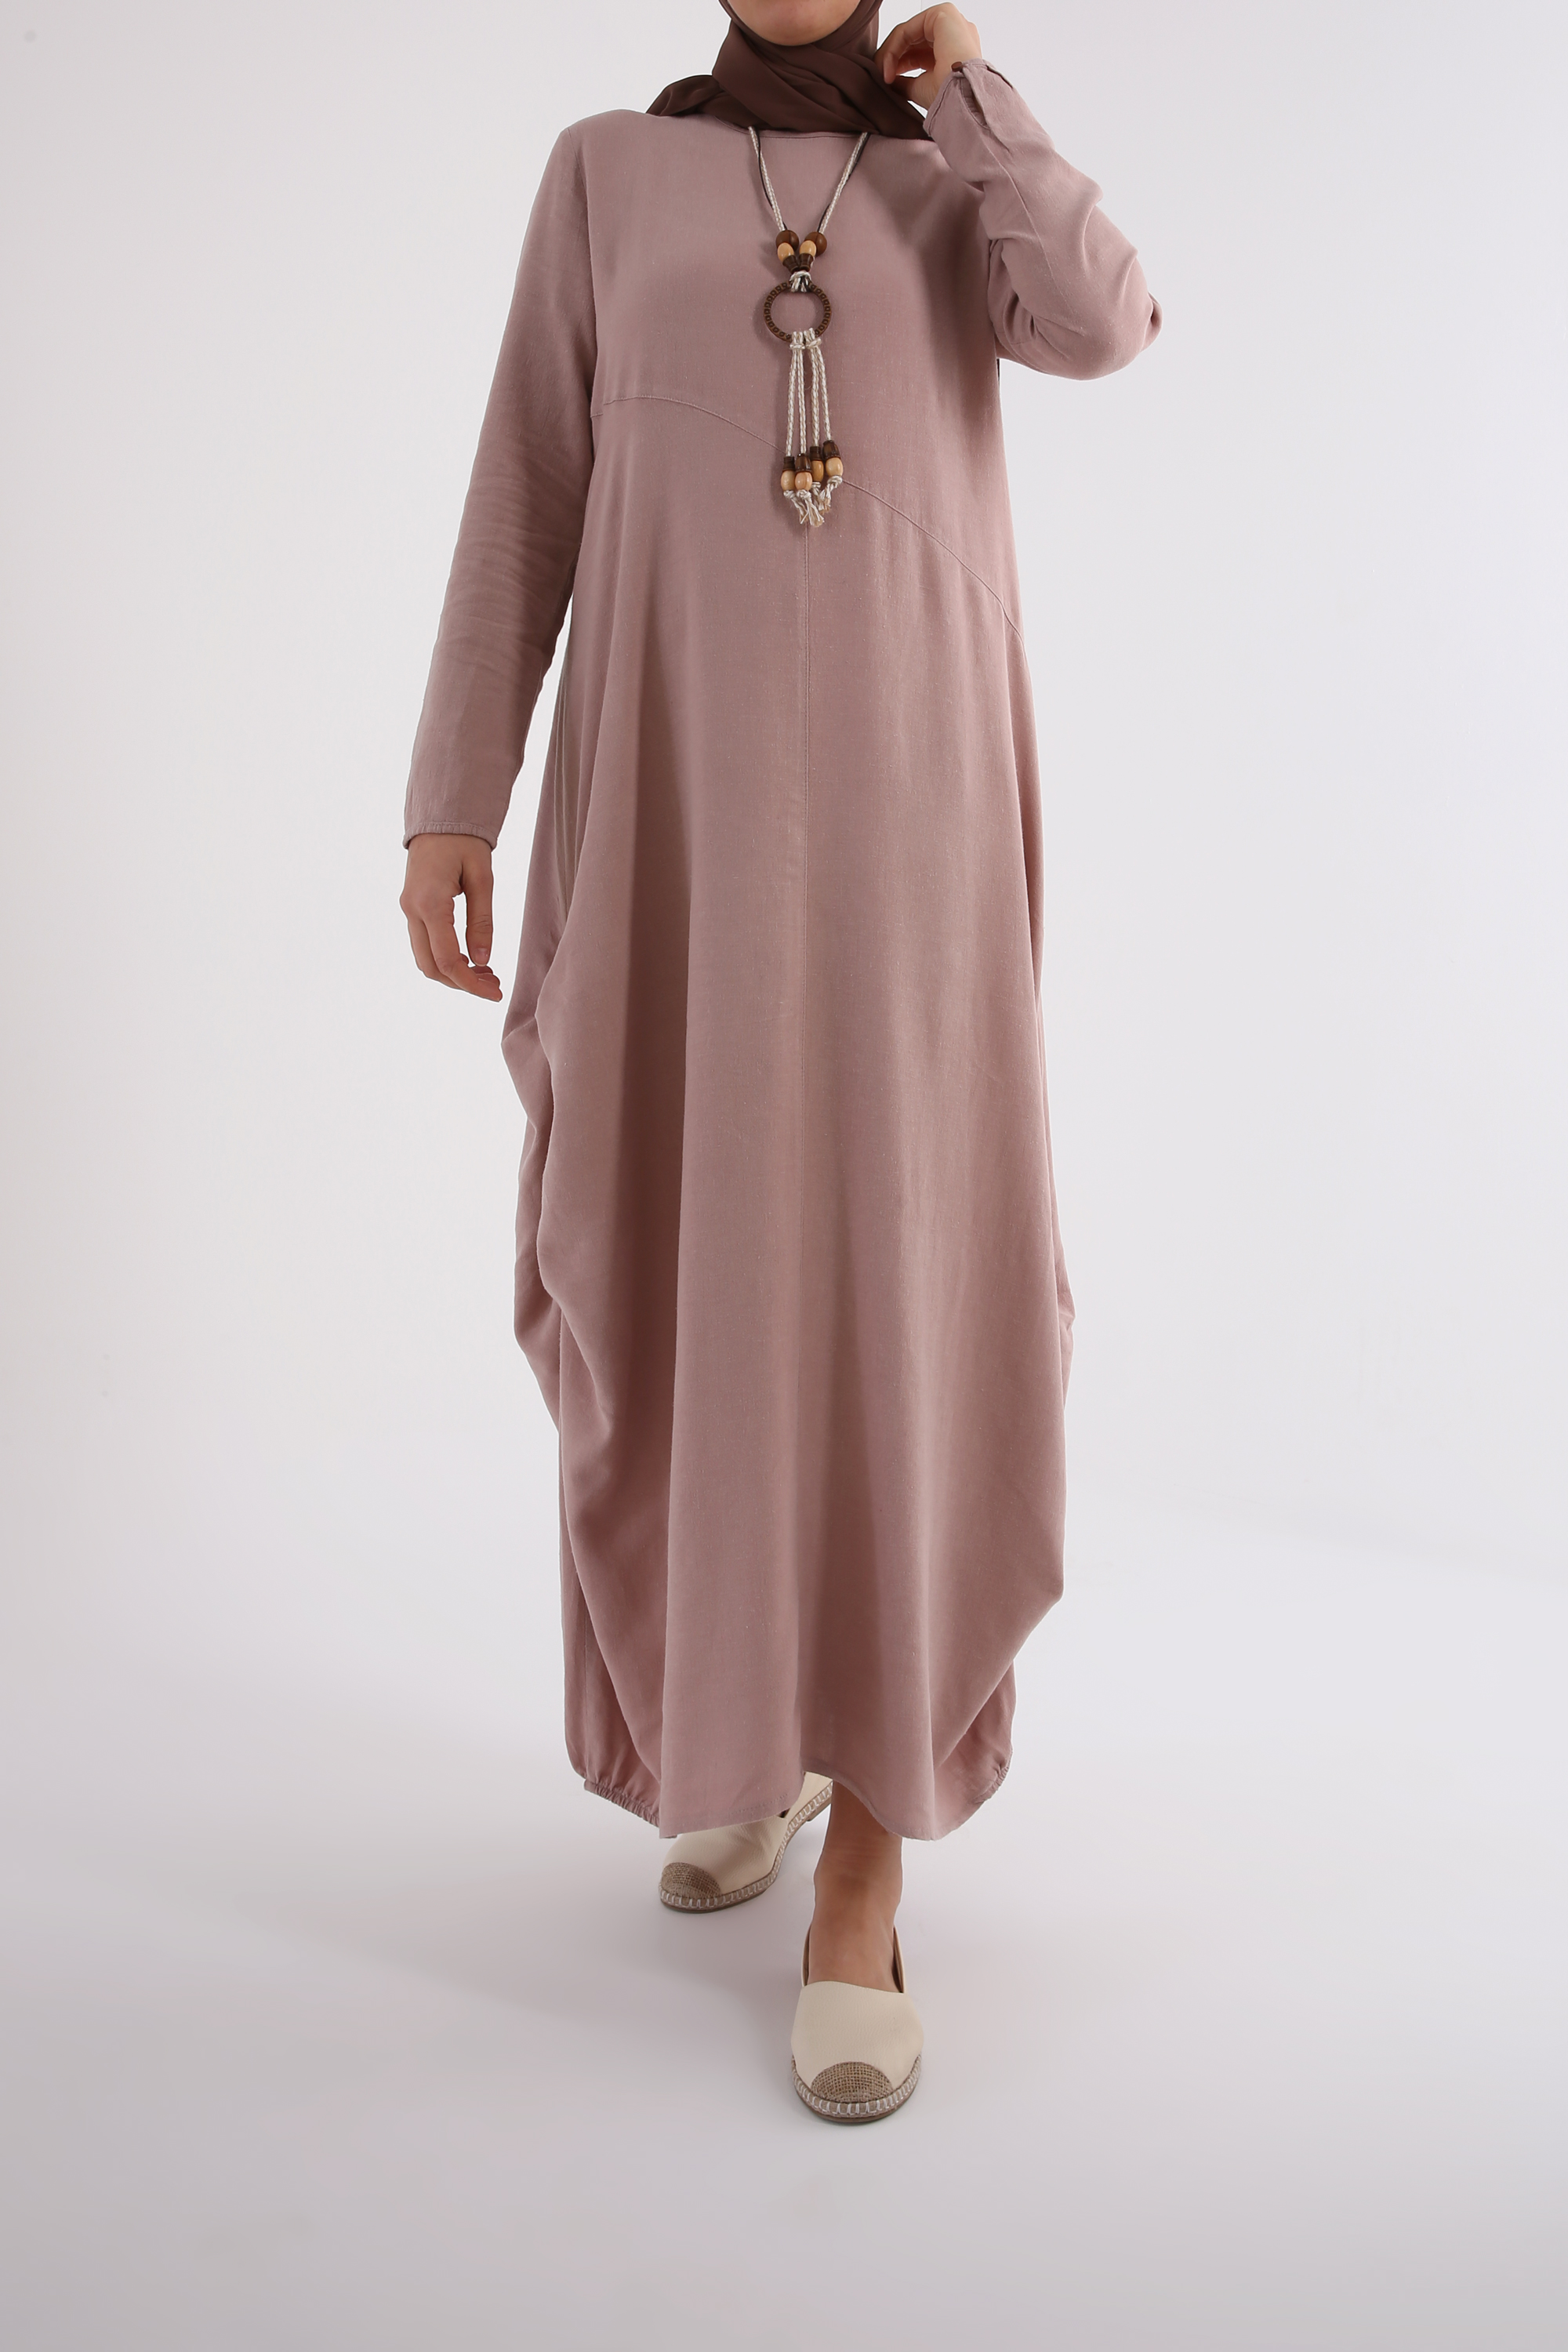 LINEN DRESS WITH NECKLACE